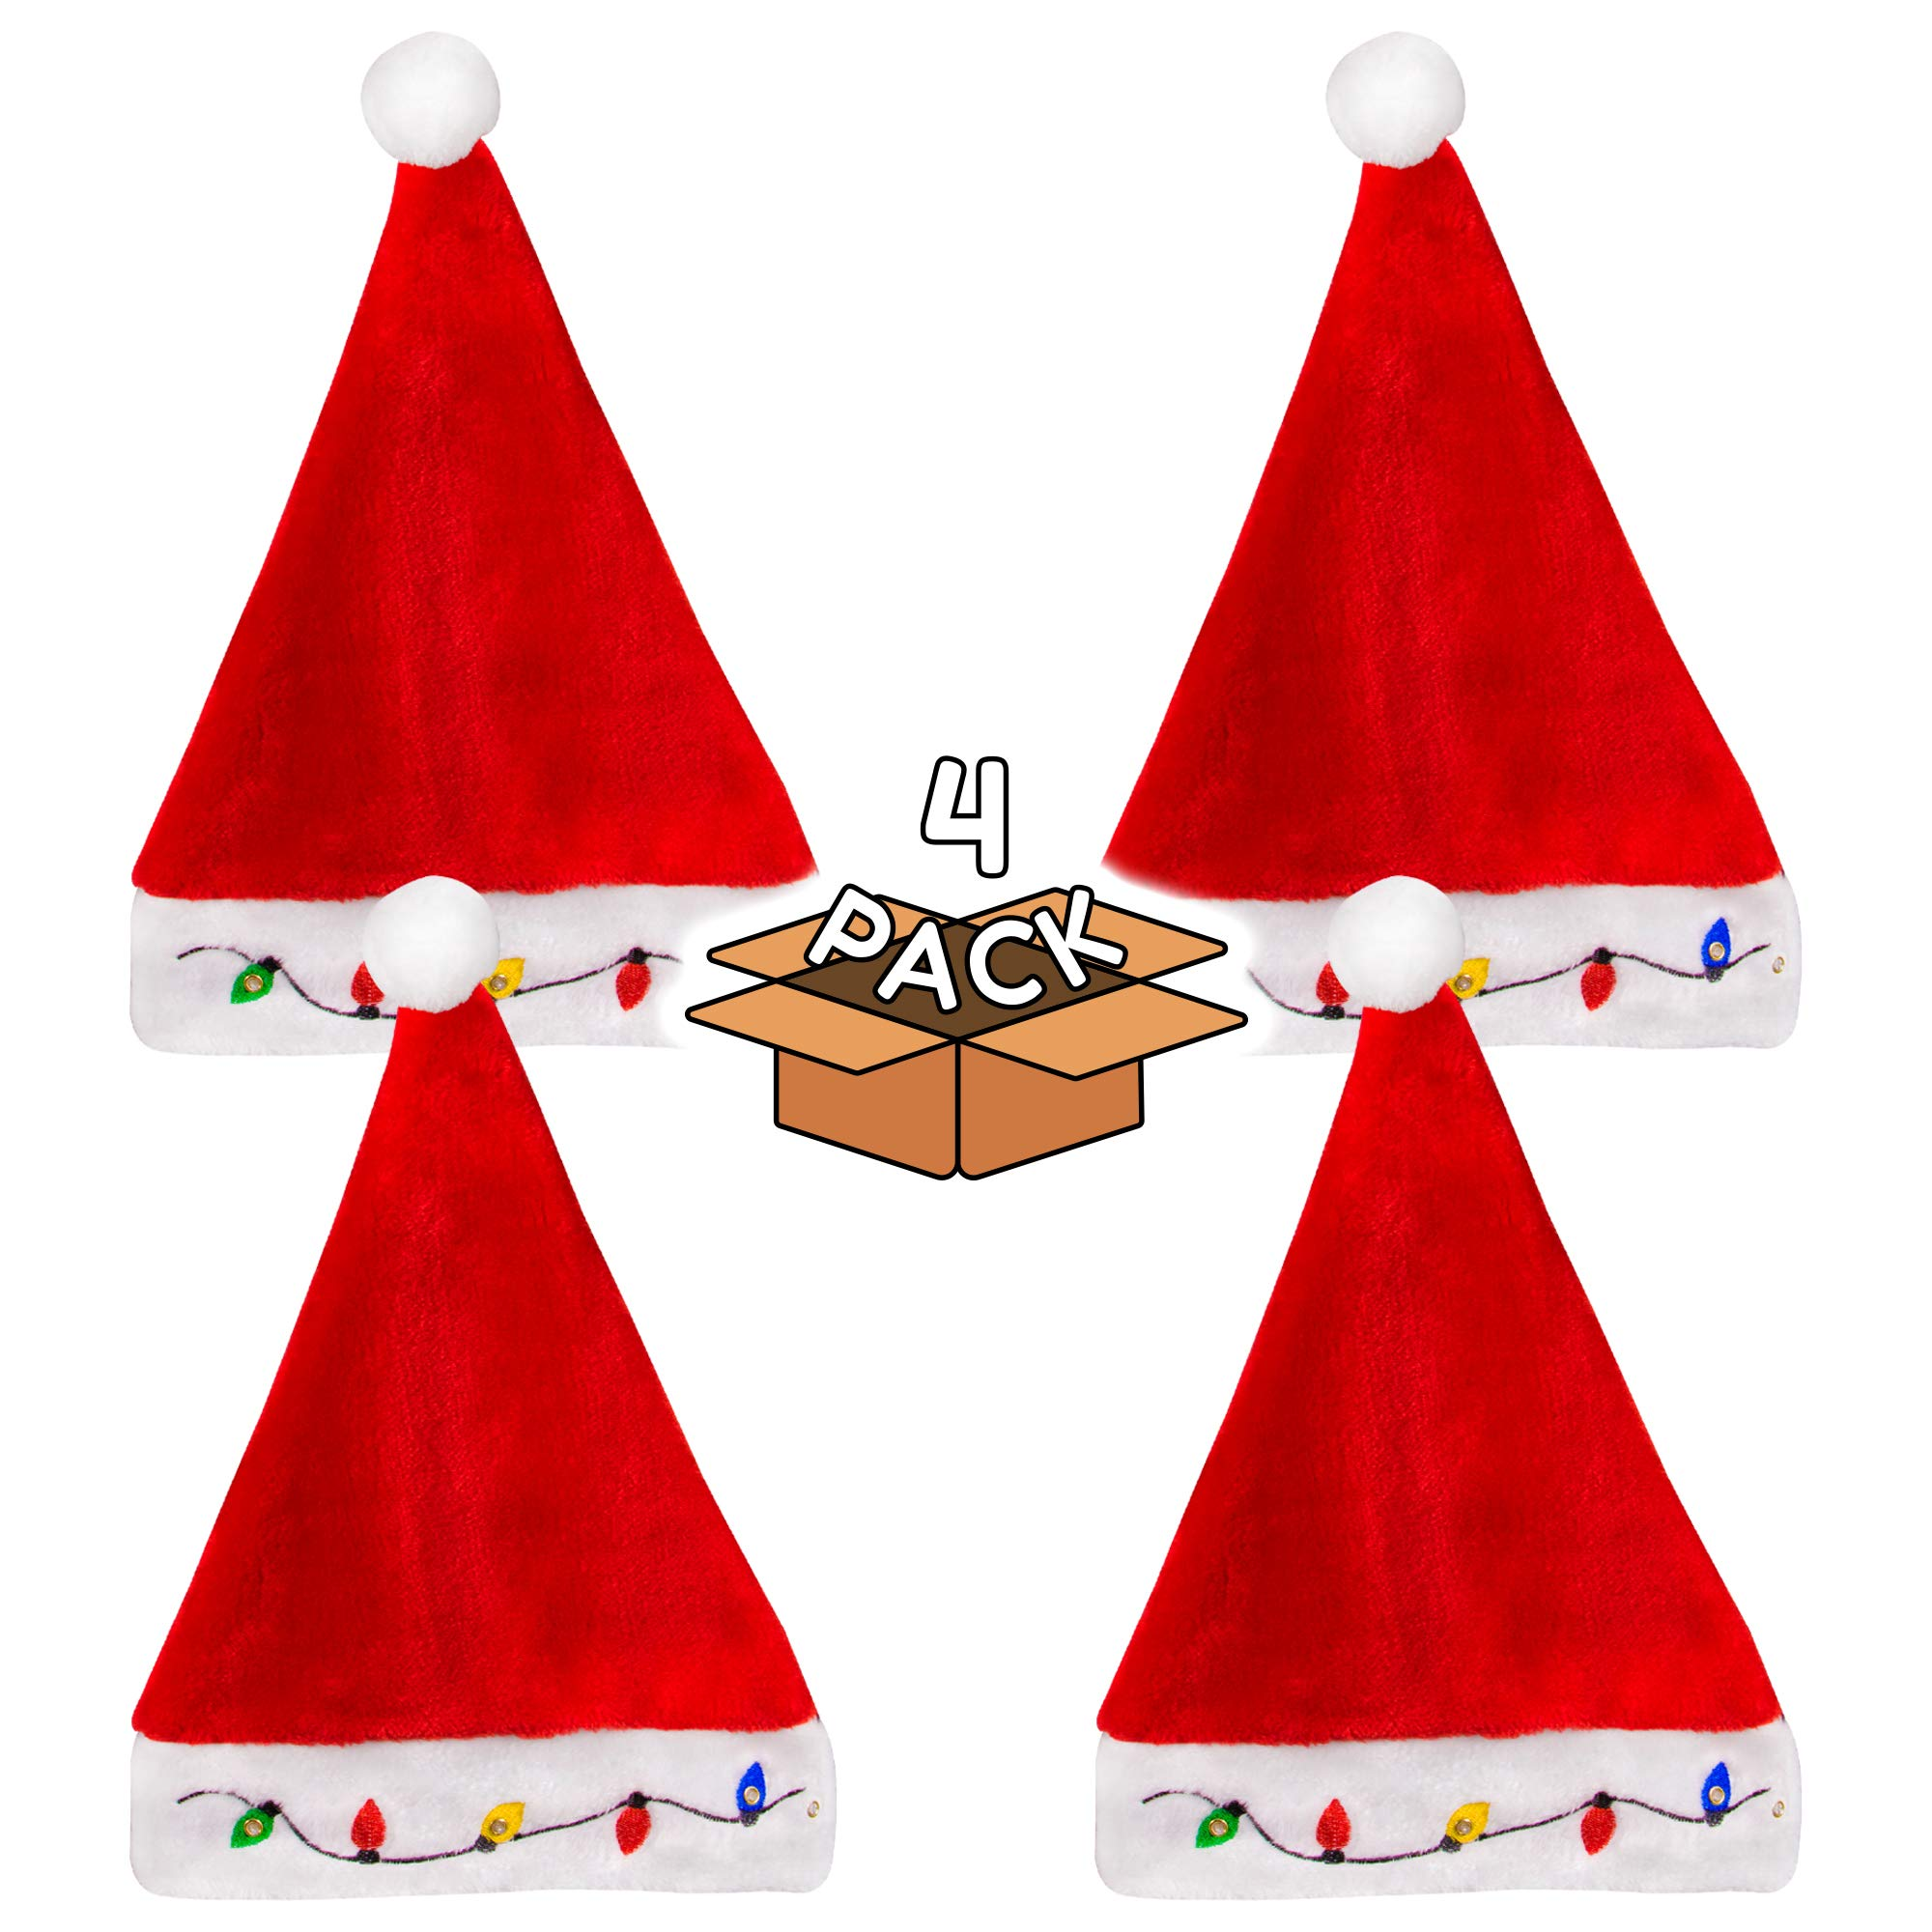 LED Light-up Christmas Bulb Plush Santa Hat for Adults and Kids - 4 Pack by Windy City Novelties